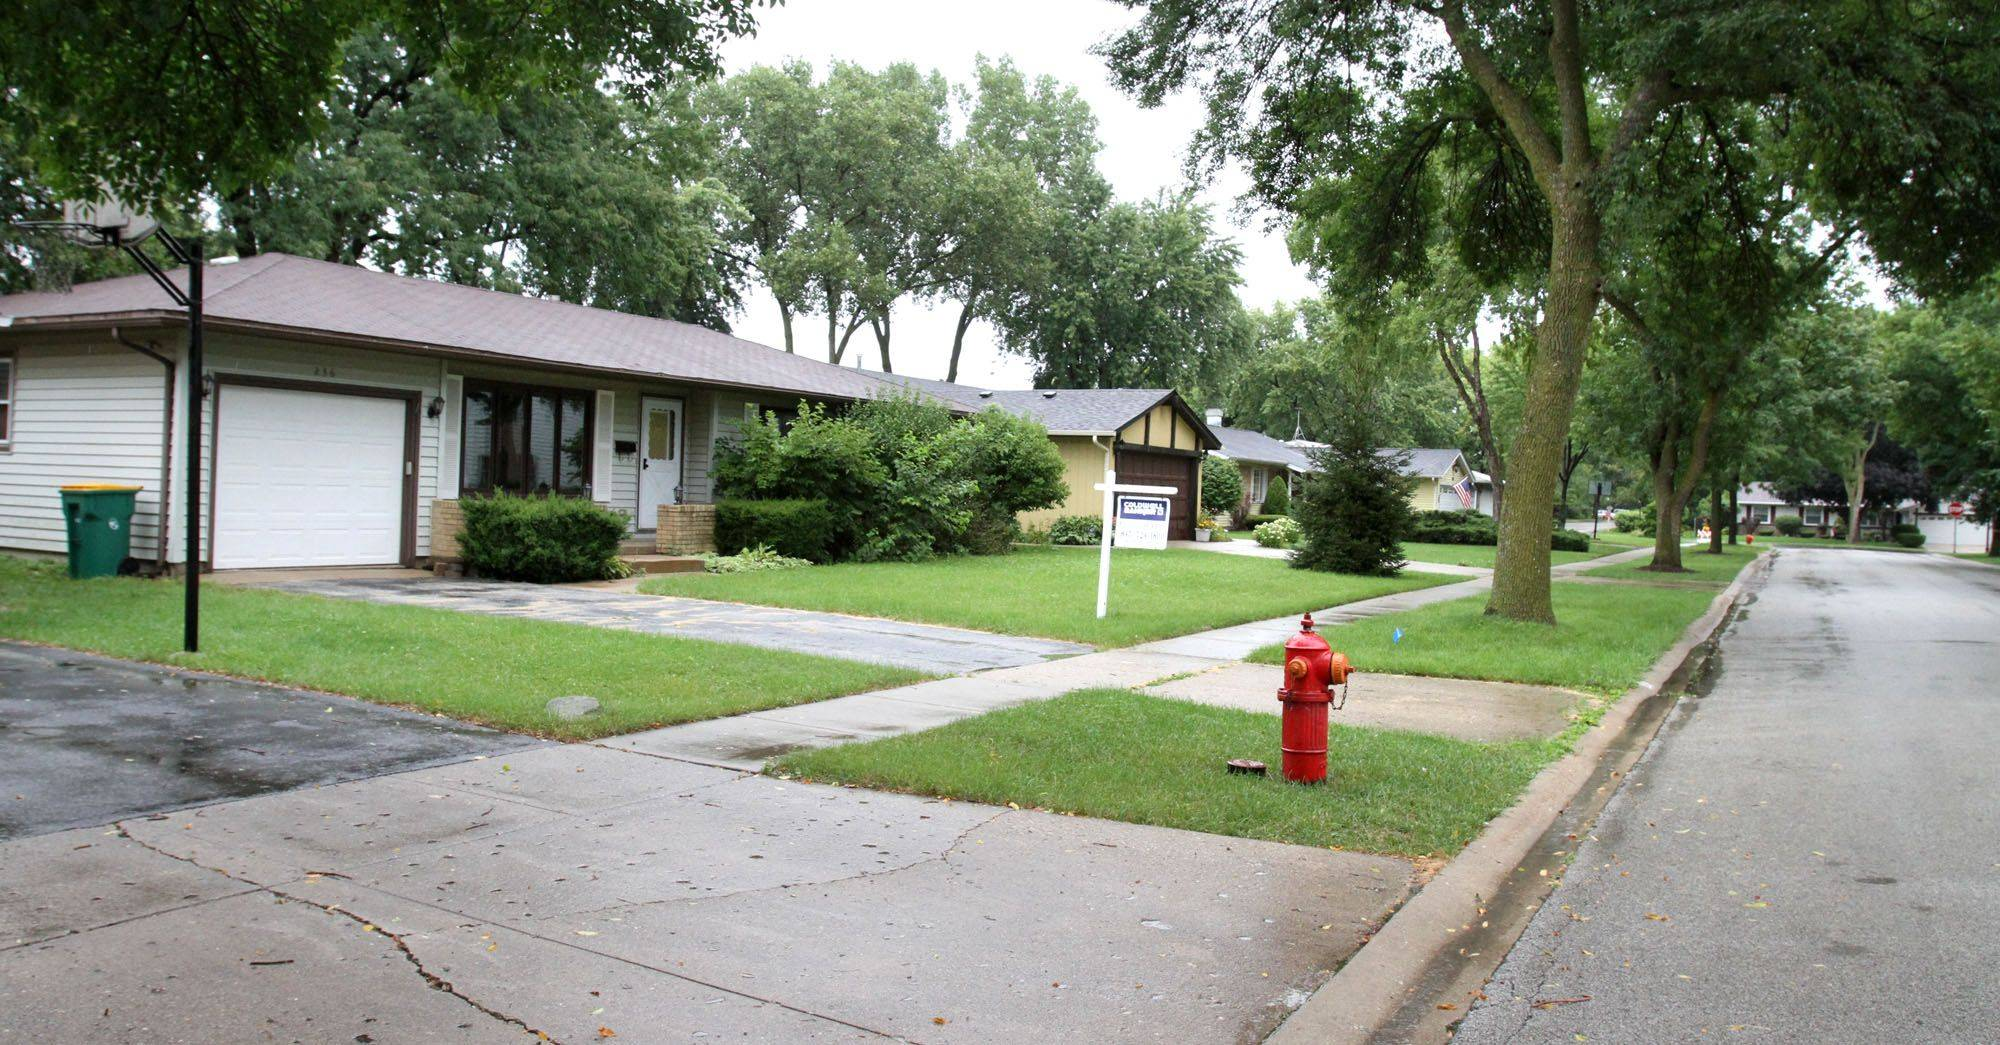 Homes in the Pavilion area of Elk Grove Village, including these along Kingsbridge Road, are typical of the suburban neighborhoods that sprouted up in the 1950s and '60s.